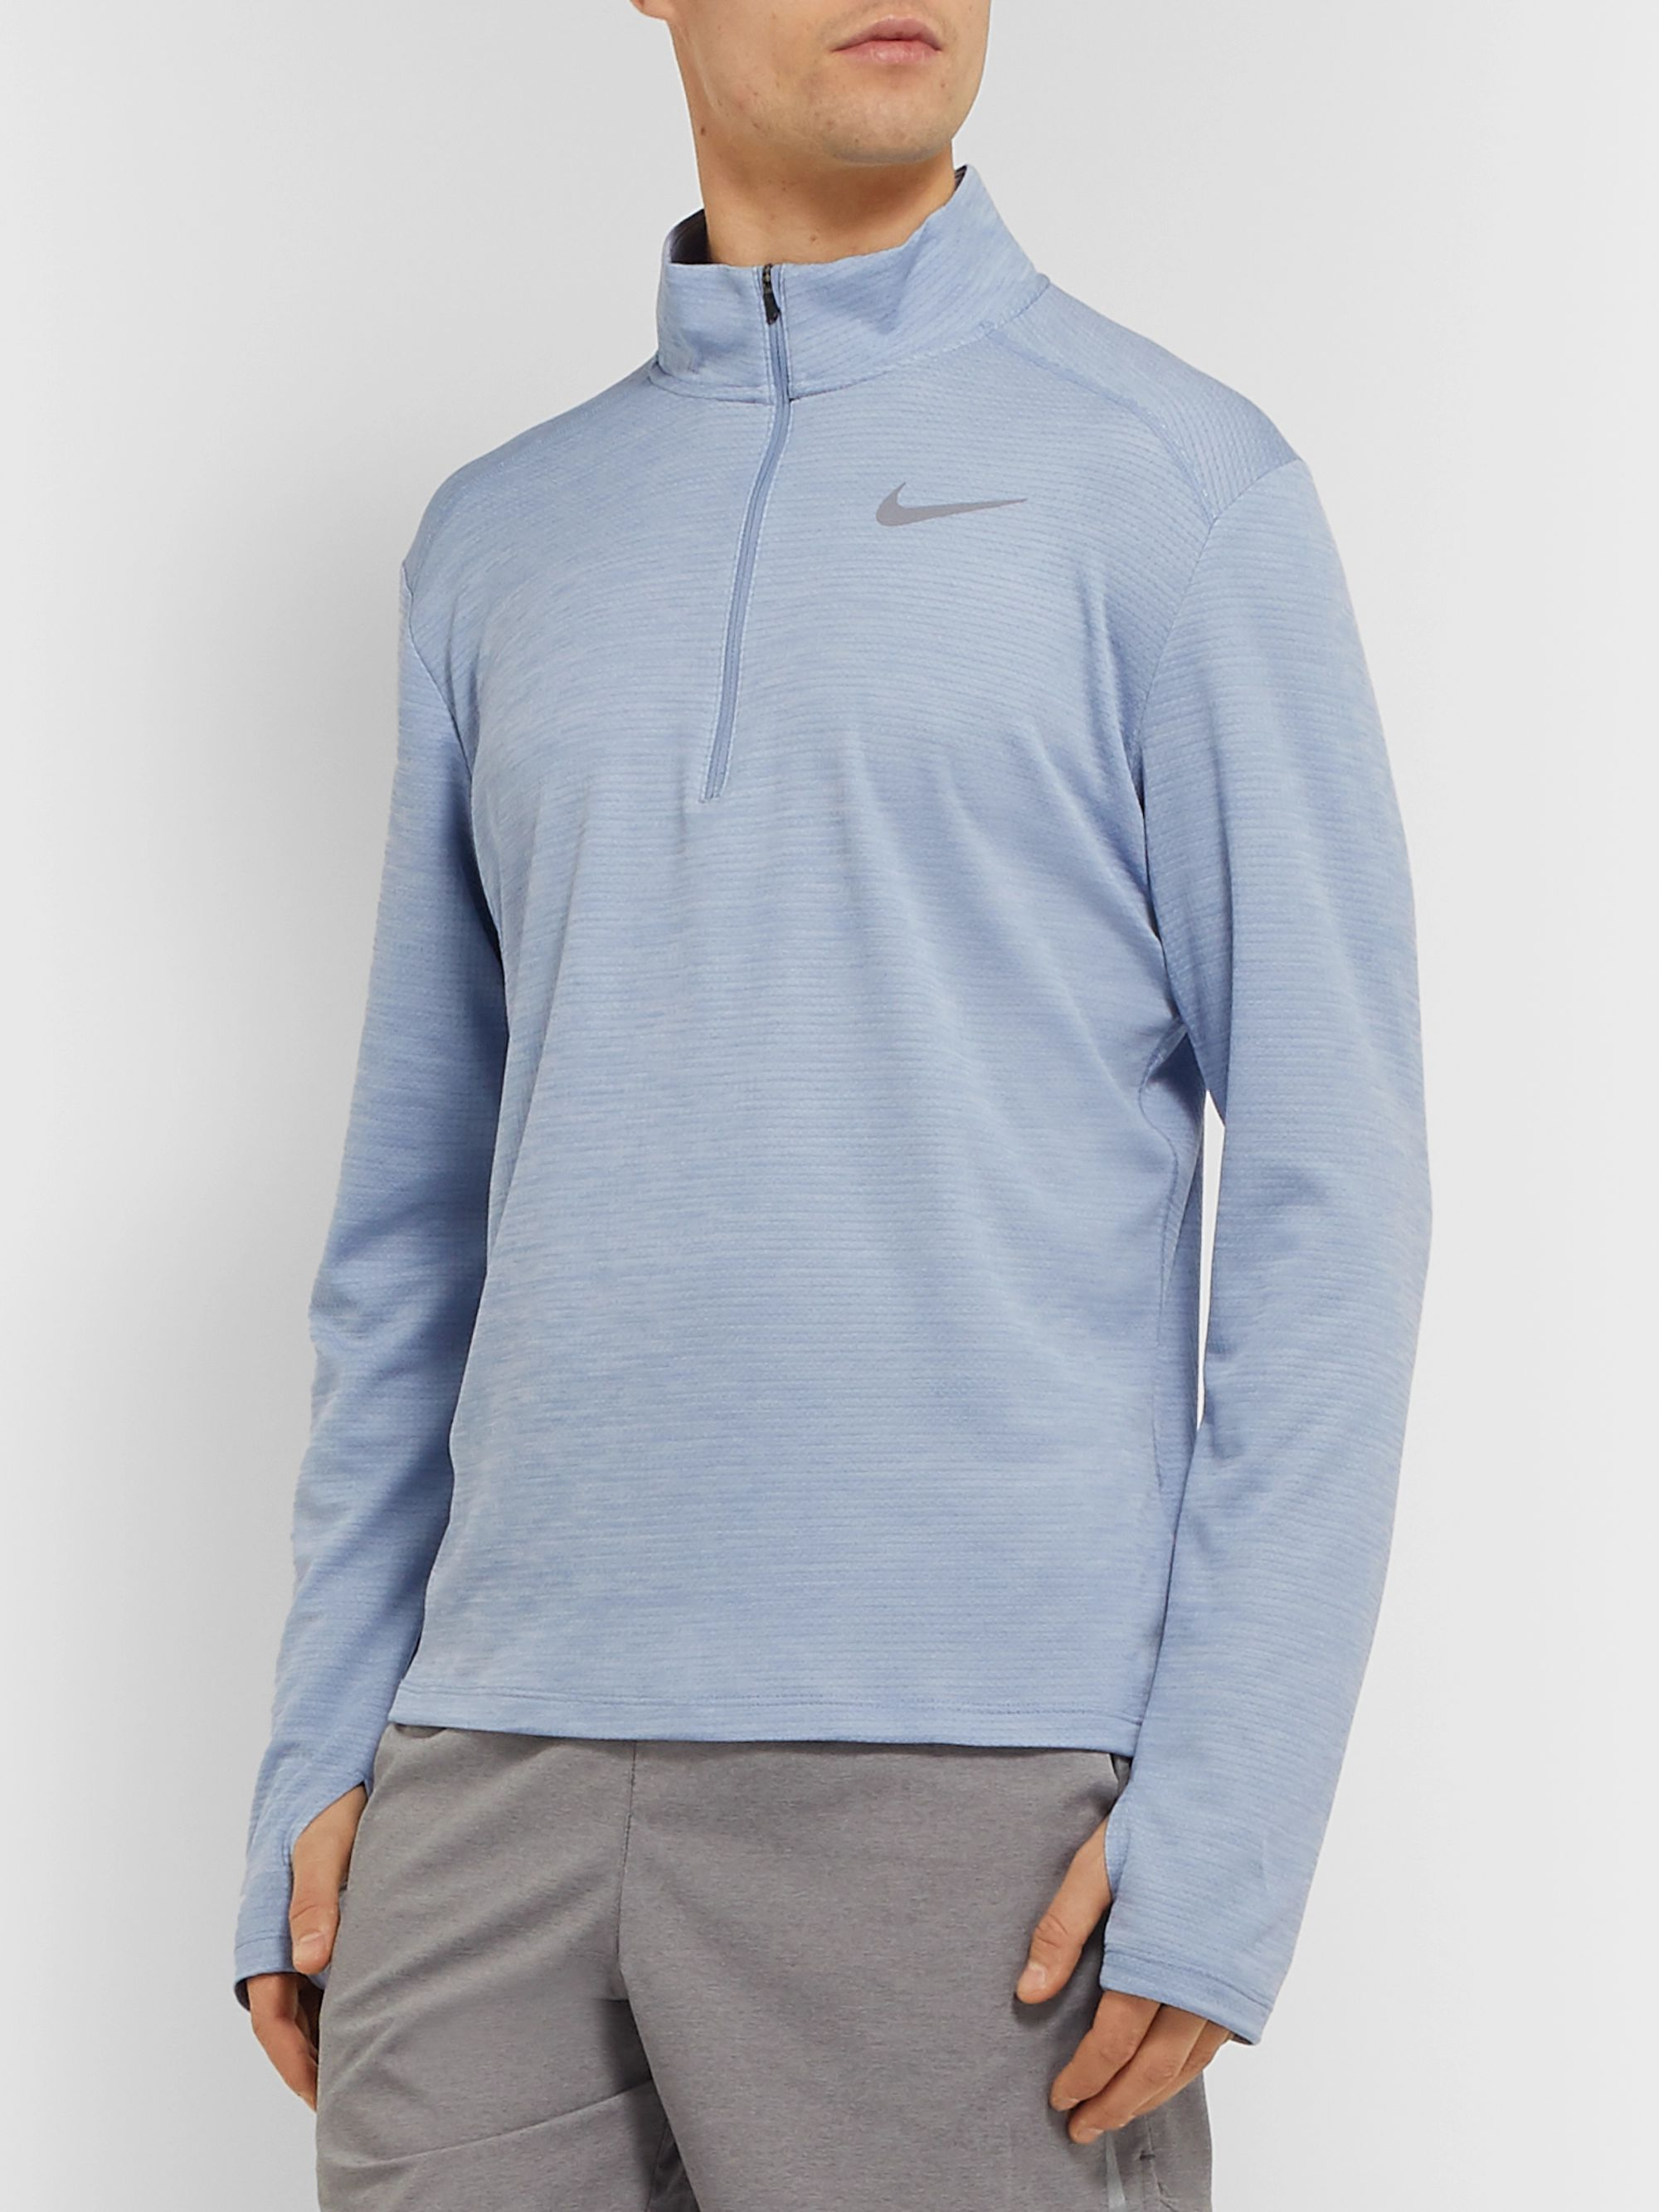 Nike Running Pacer Dri-FIT Half-Zip Top